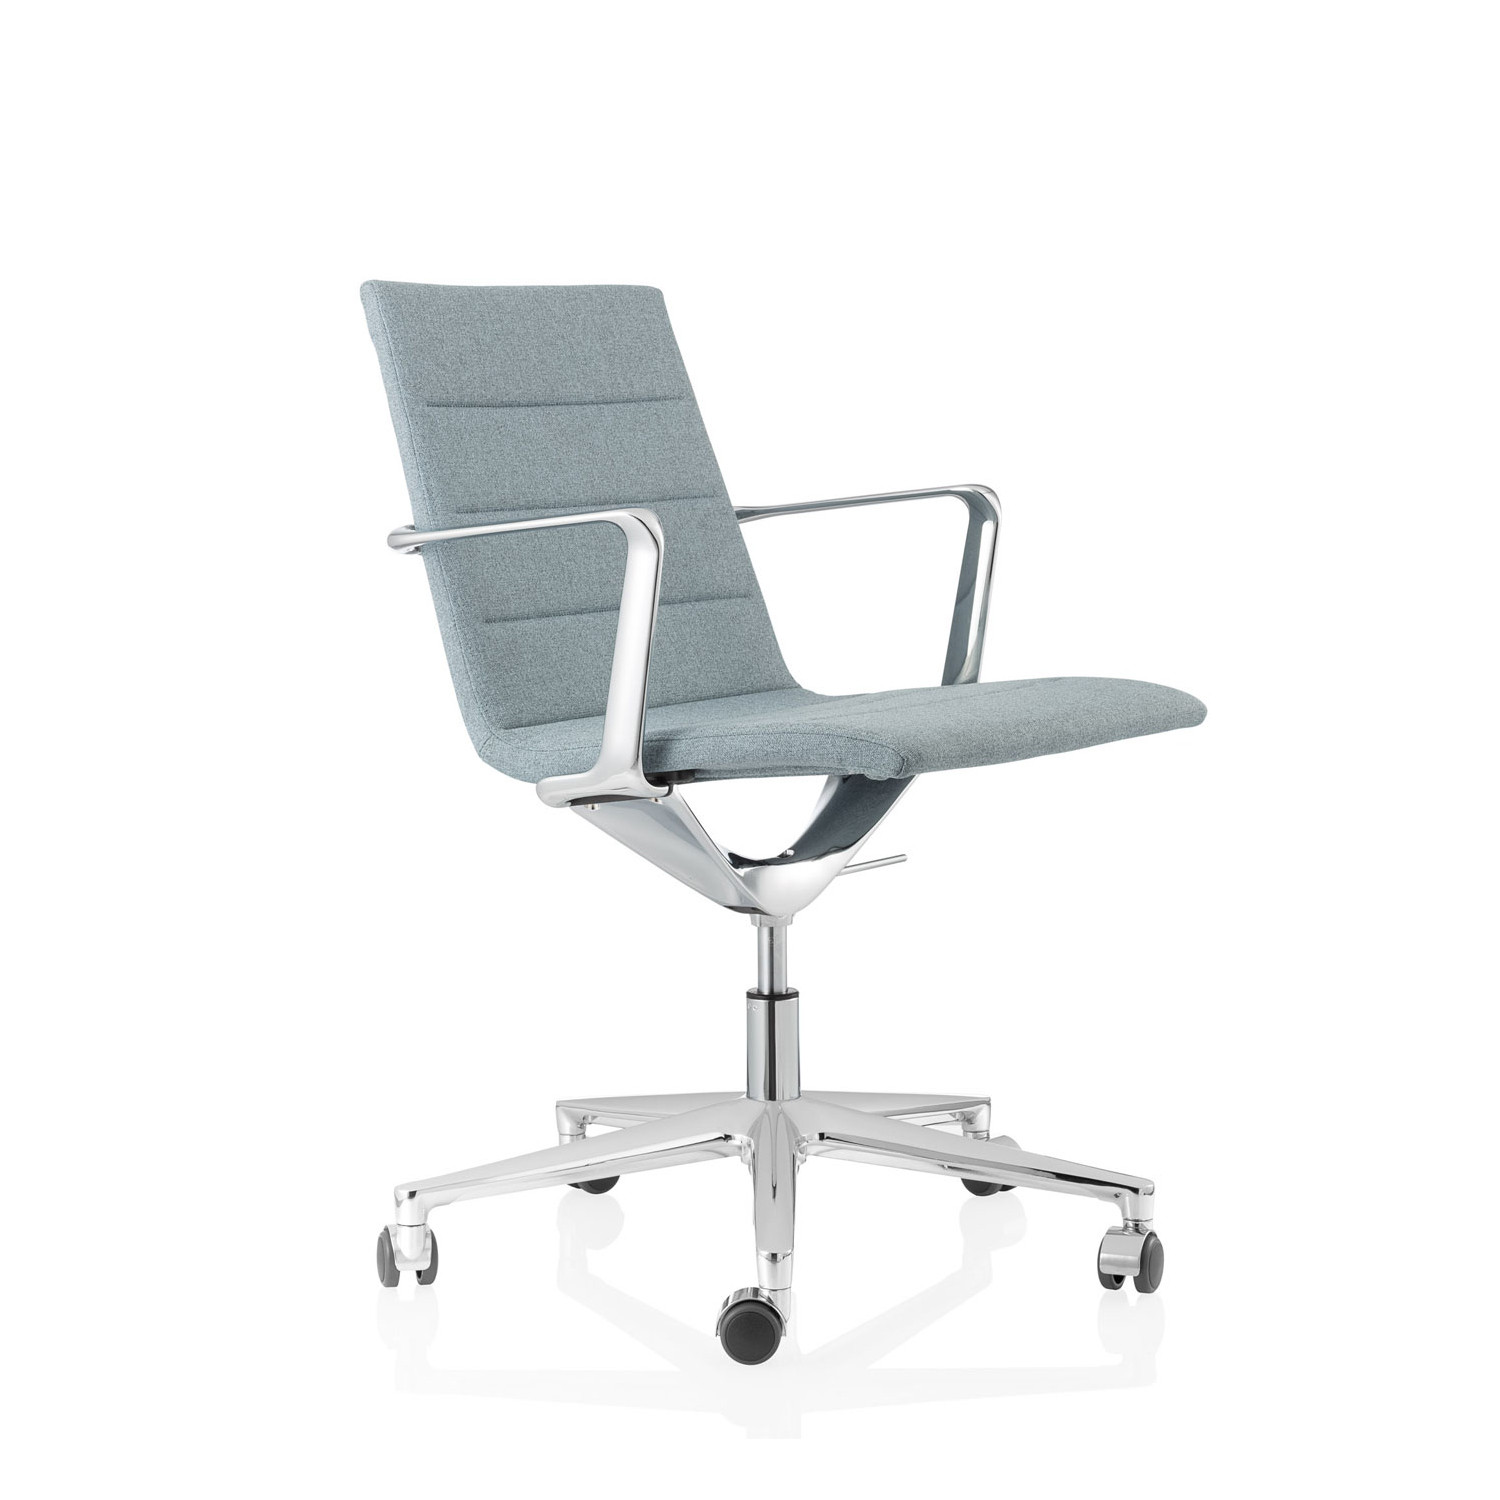 Valea Chairs by ICF Spa